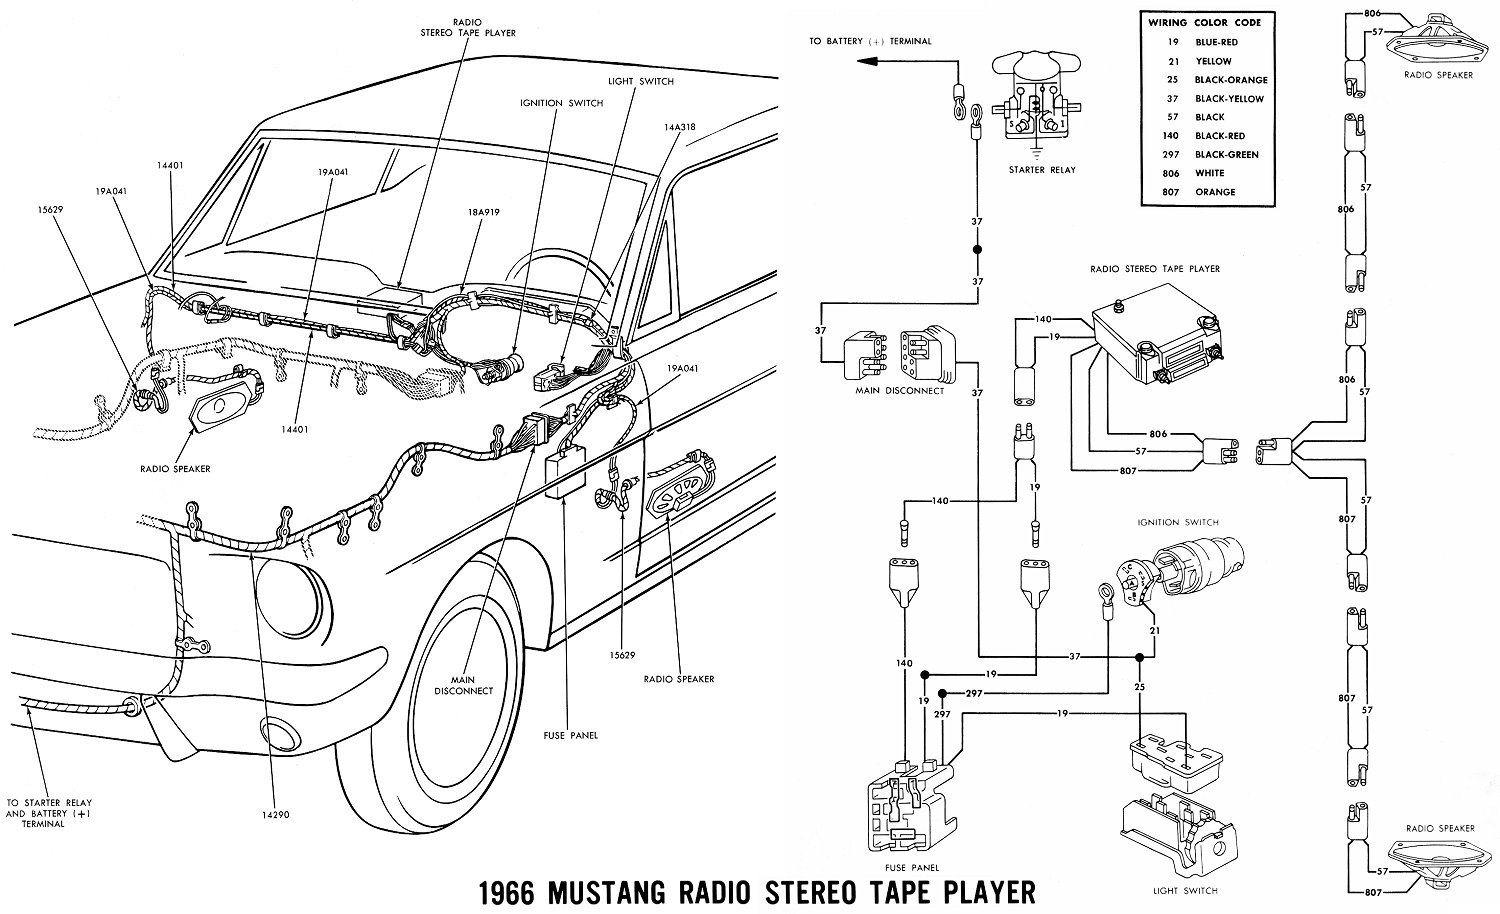 1966 Mustang Wiring Diagrams on 69 camaro fuel gauge wiring diagram